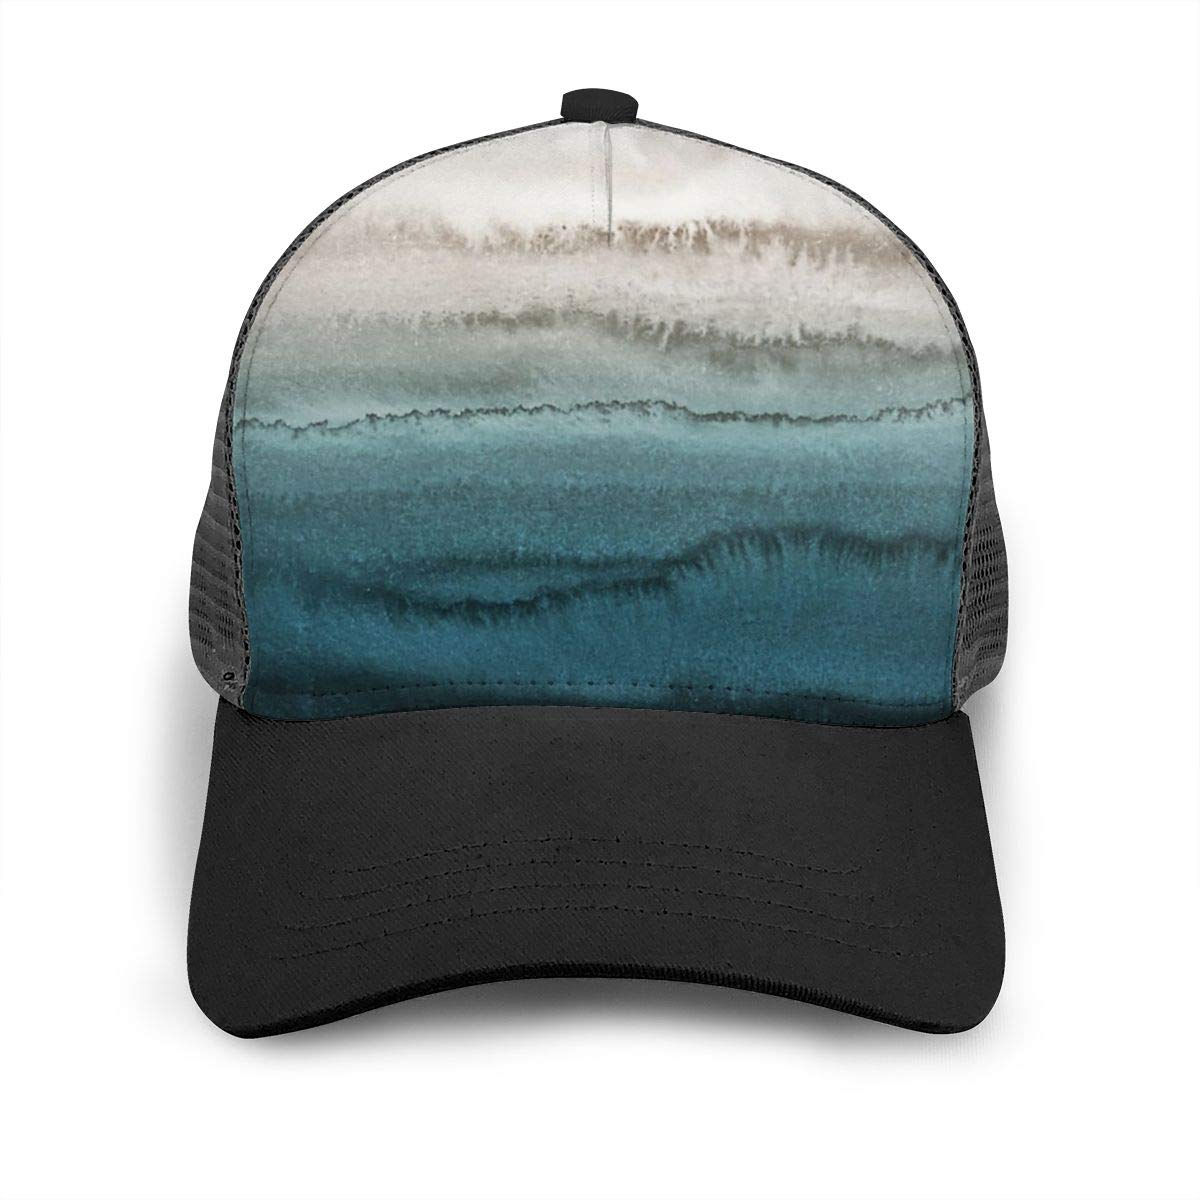 Mens and Womens Within The Tides Crashing Flat Baseball Hat Solid Sports Cap for Unisex